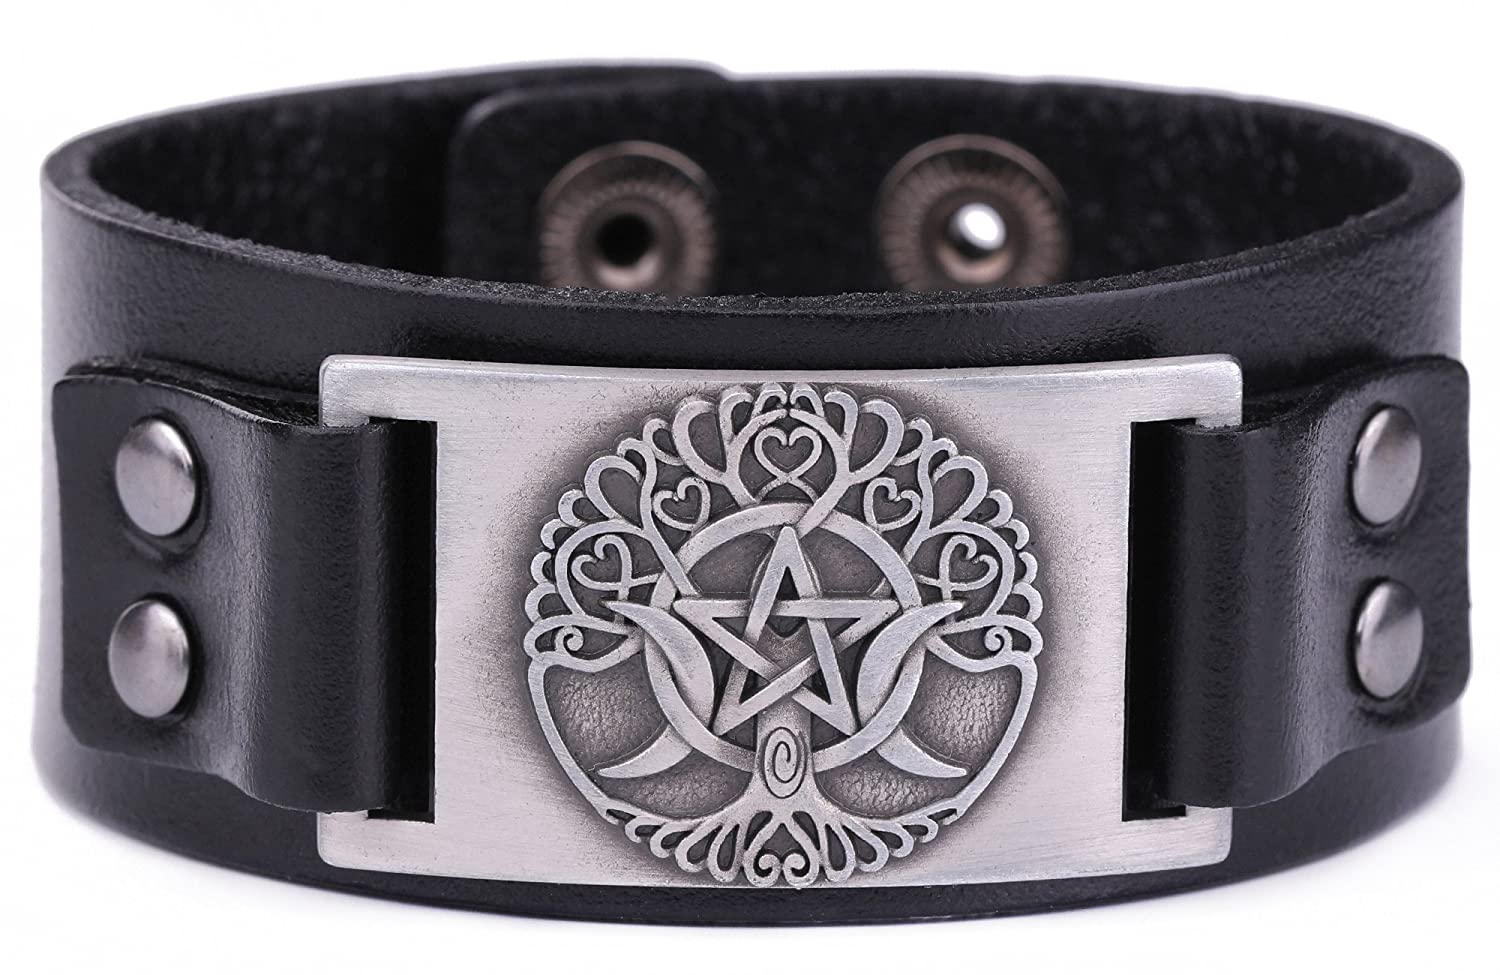 Wicca Religious Viking Irish Knot Triple Moon Tree of Life Patttern Bangle Leather Bracelet Black) GeXiang